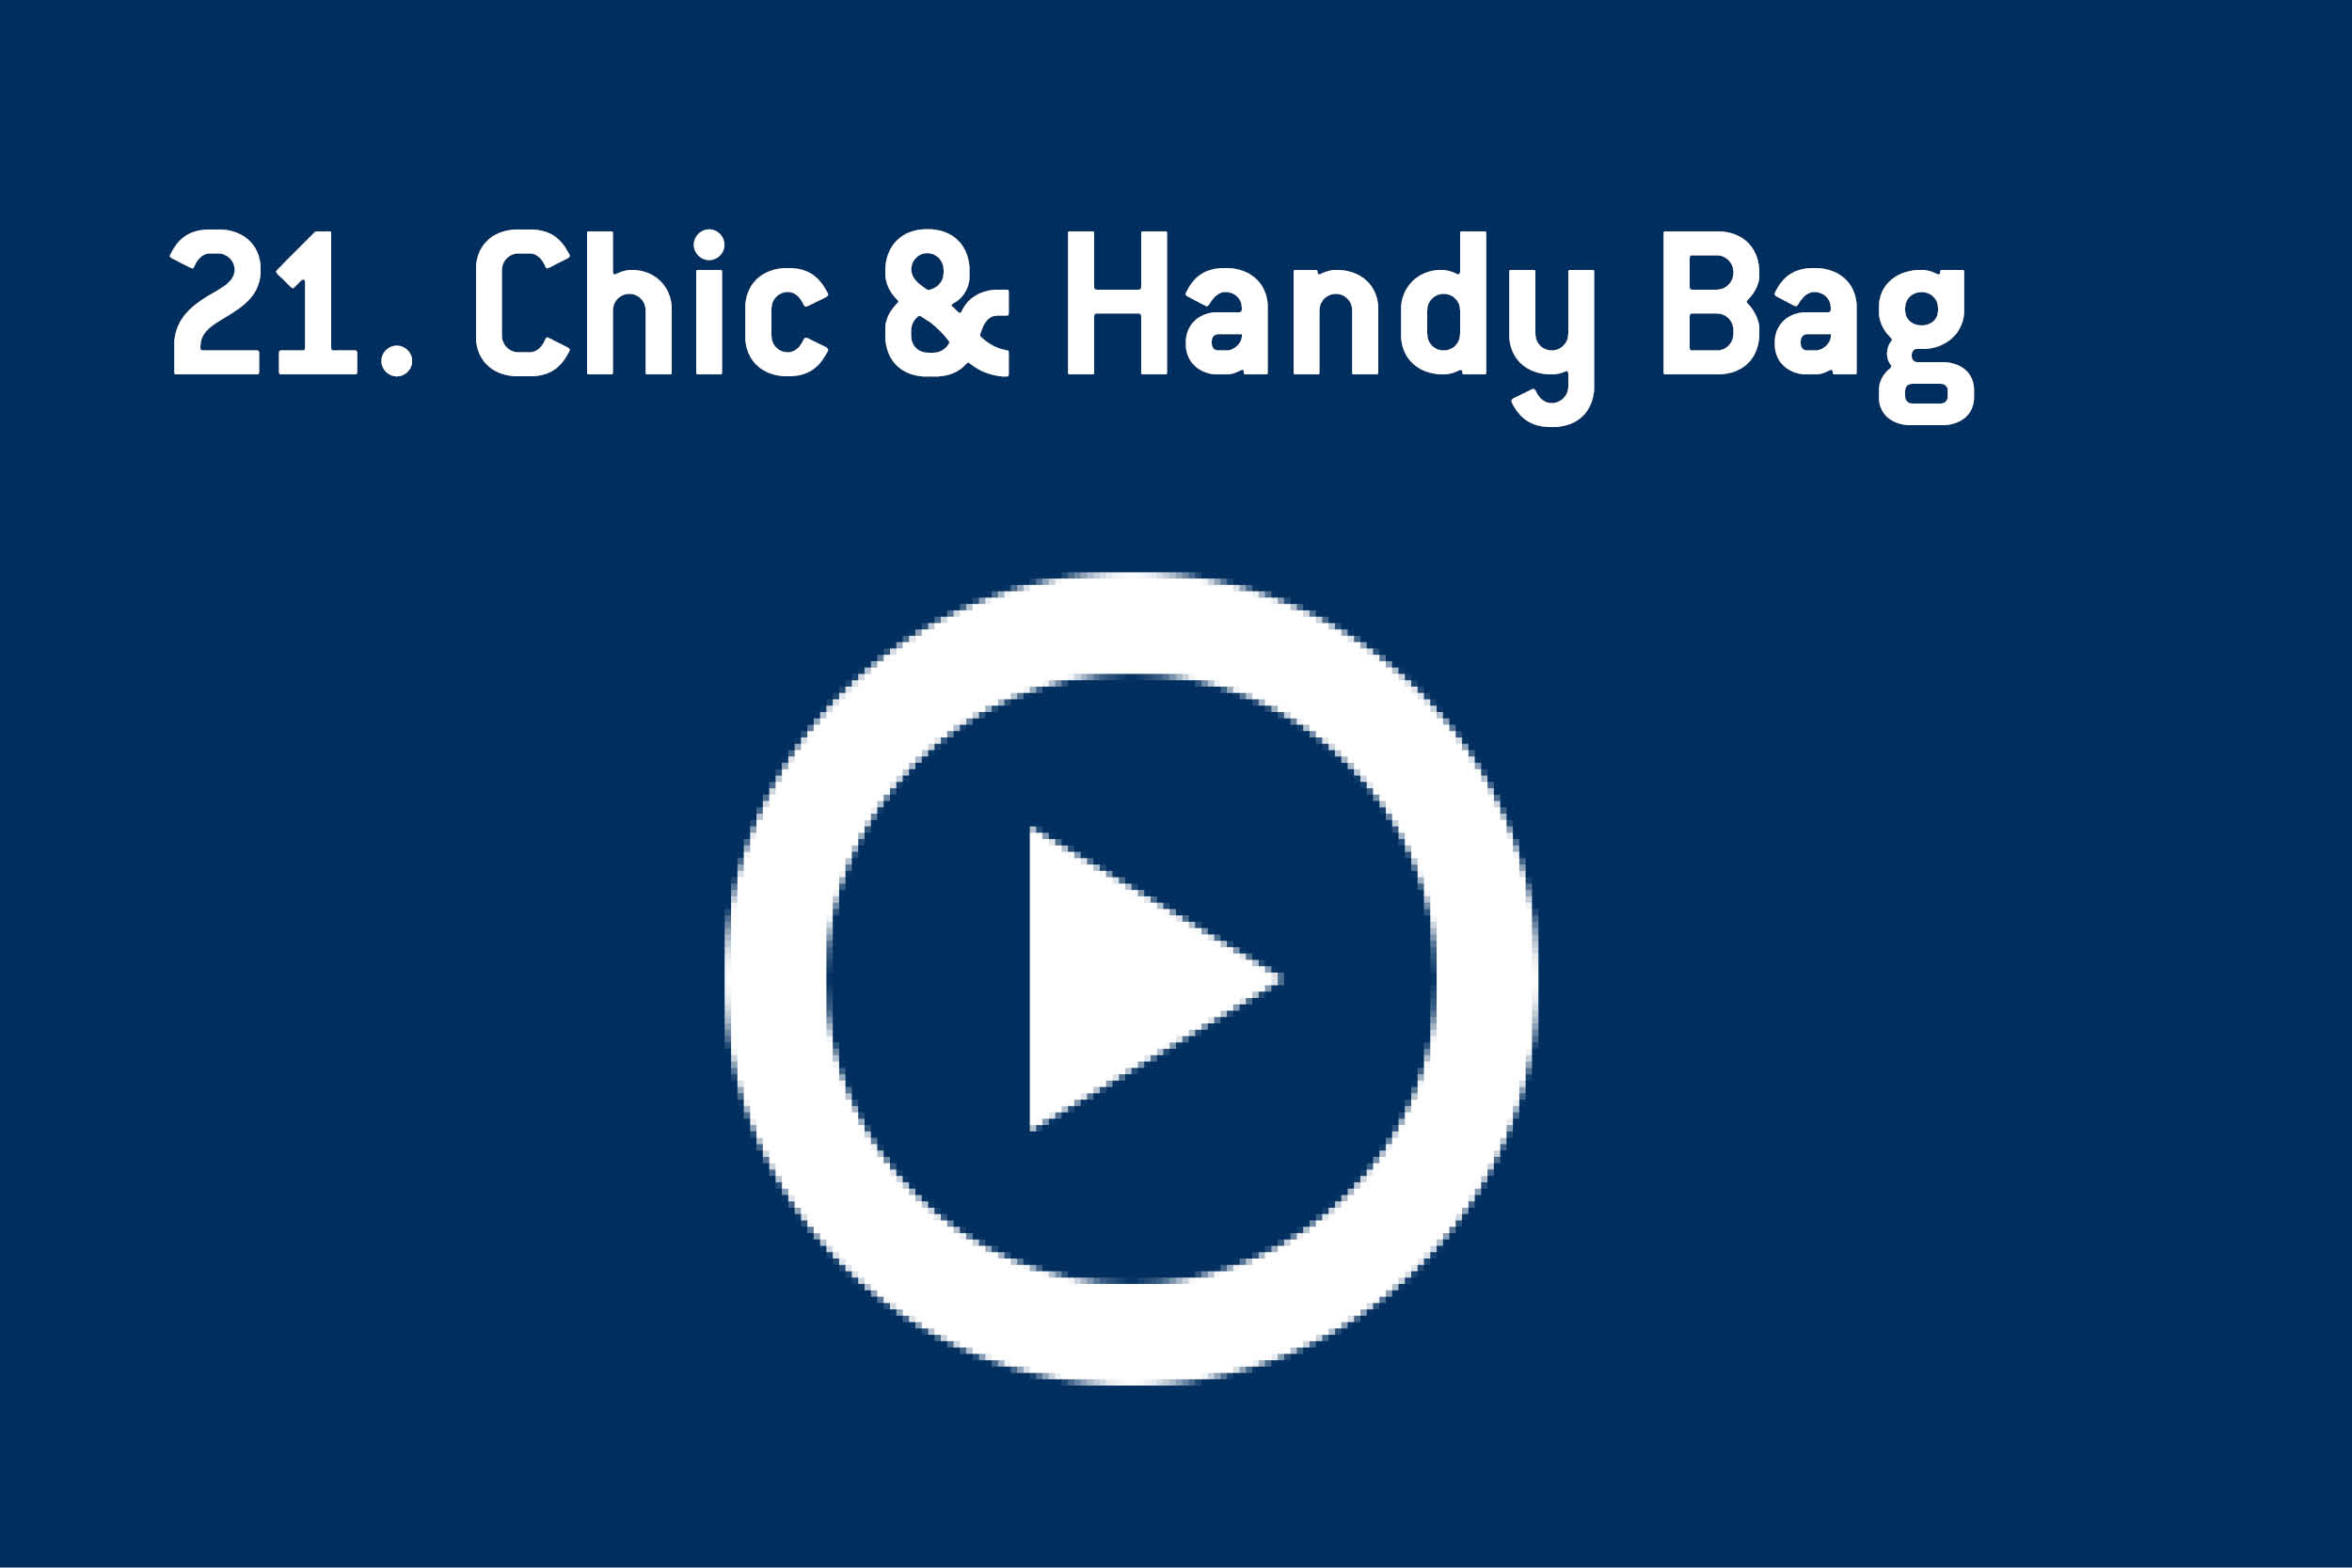 chic handy bag